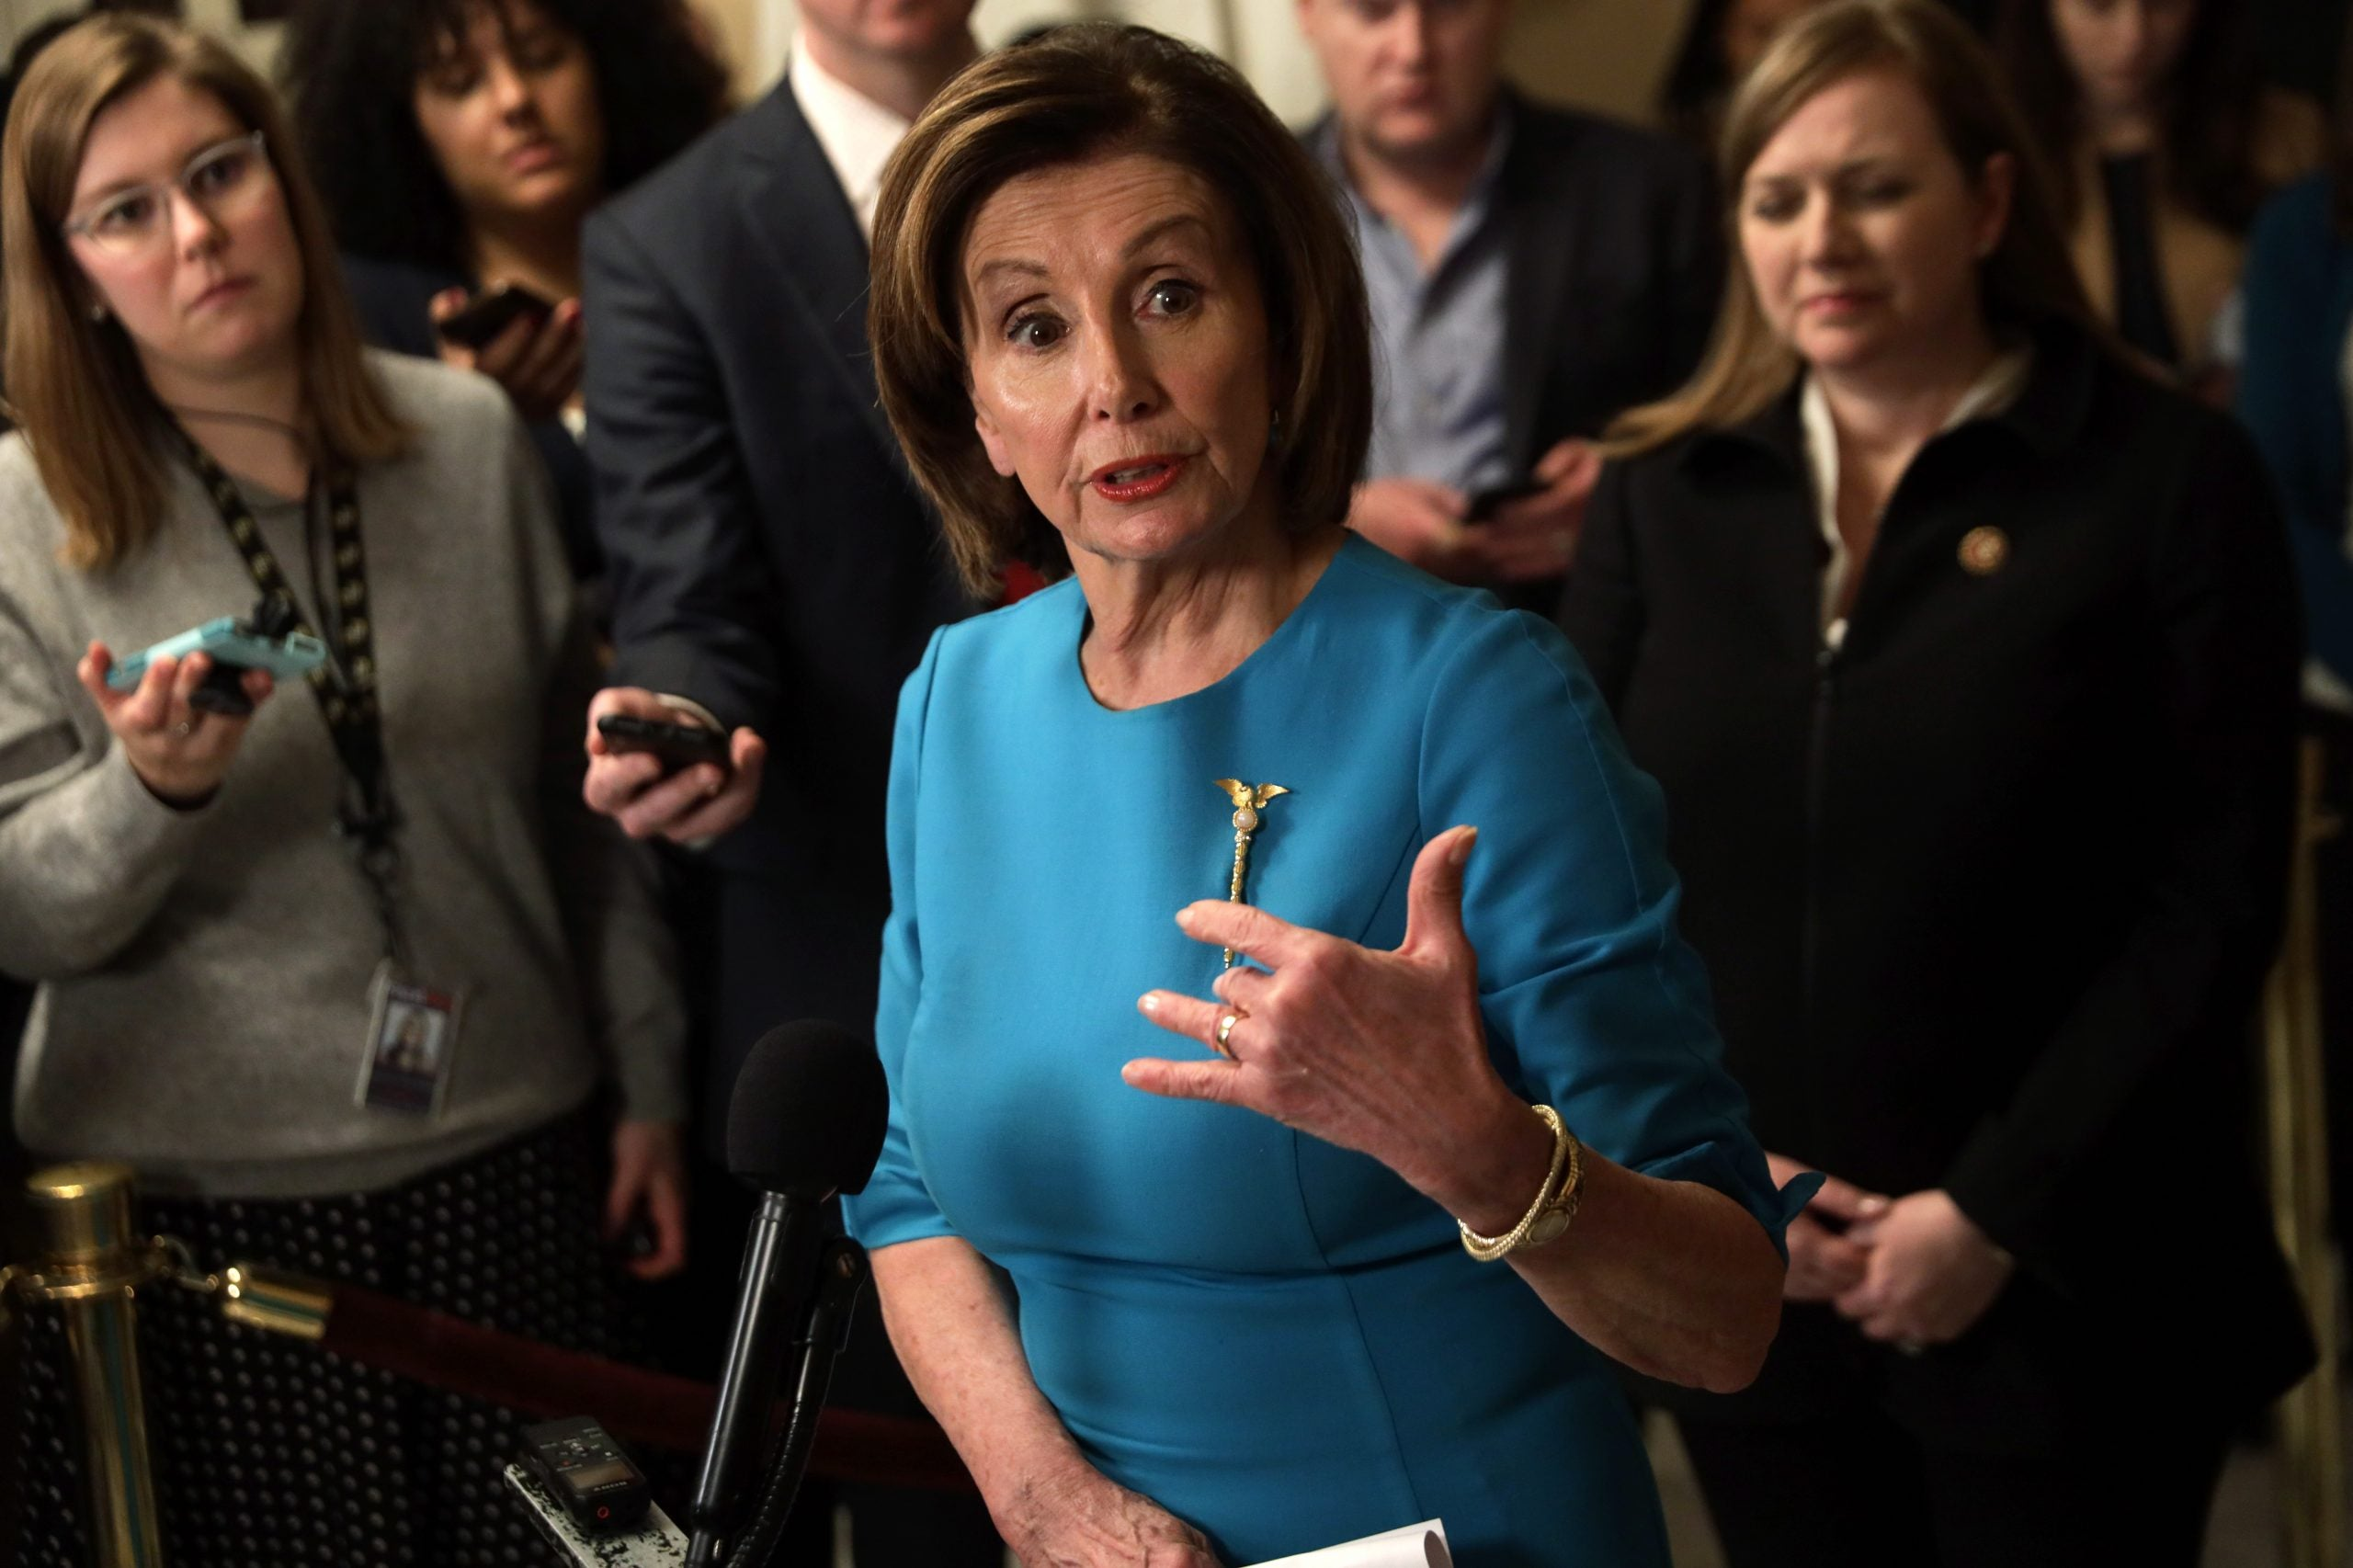 Nancy Pelosi discusses stimulus, which includes aids to small business owners